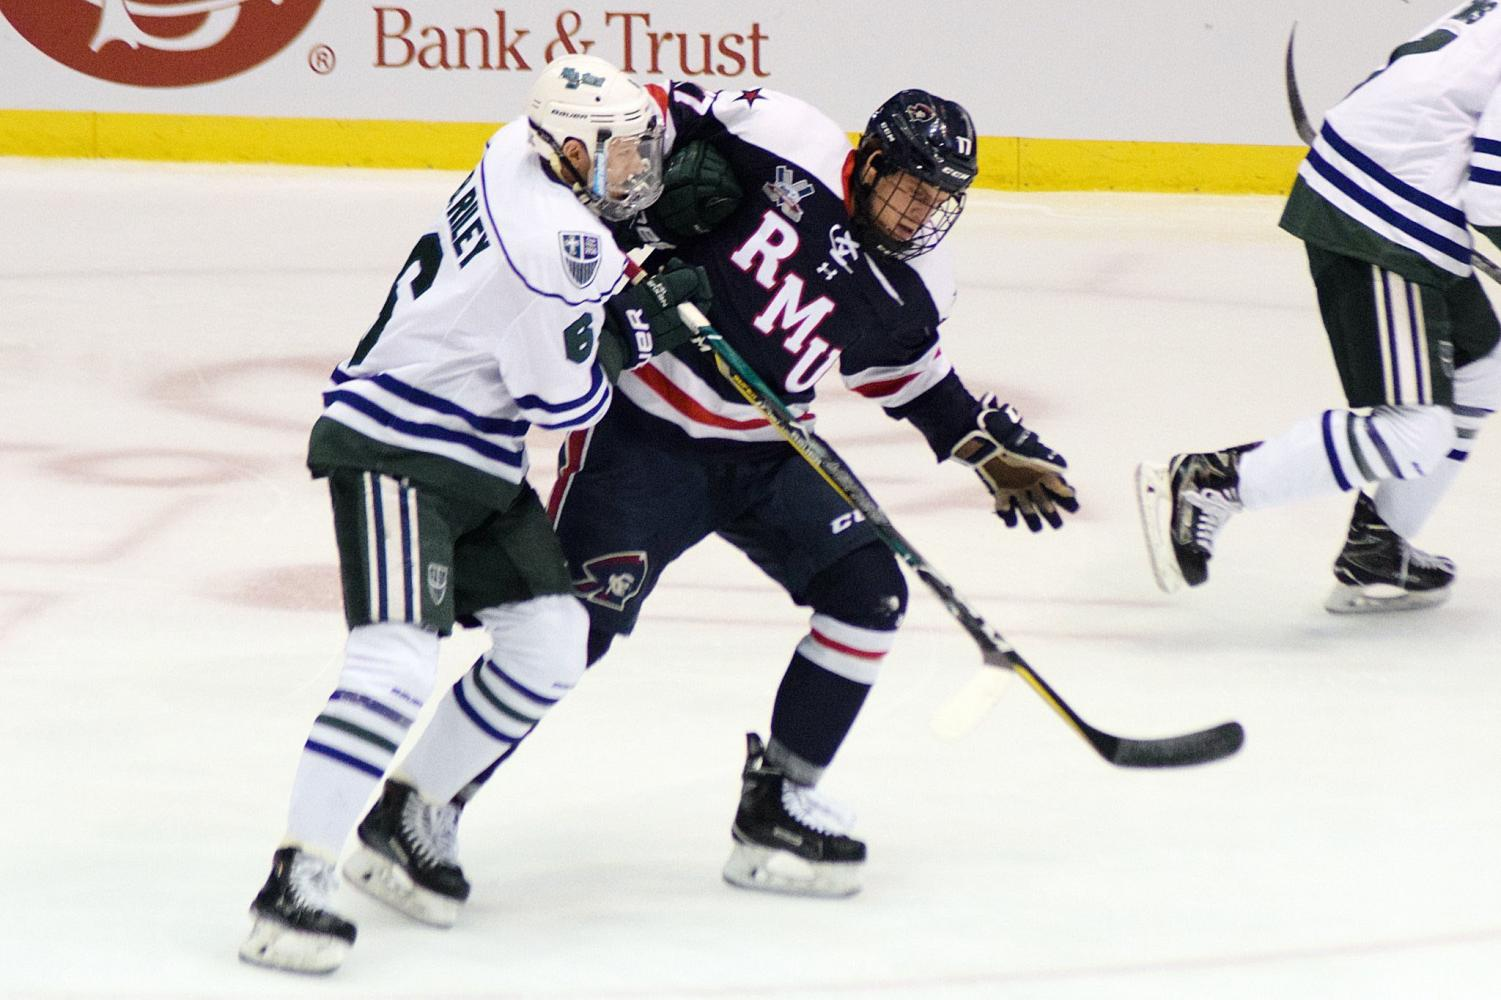 The Lakers' Jack Riley battles with Robert Morris'Brandon Watt.